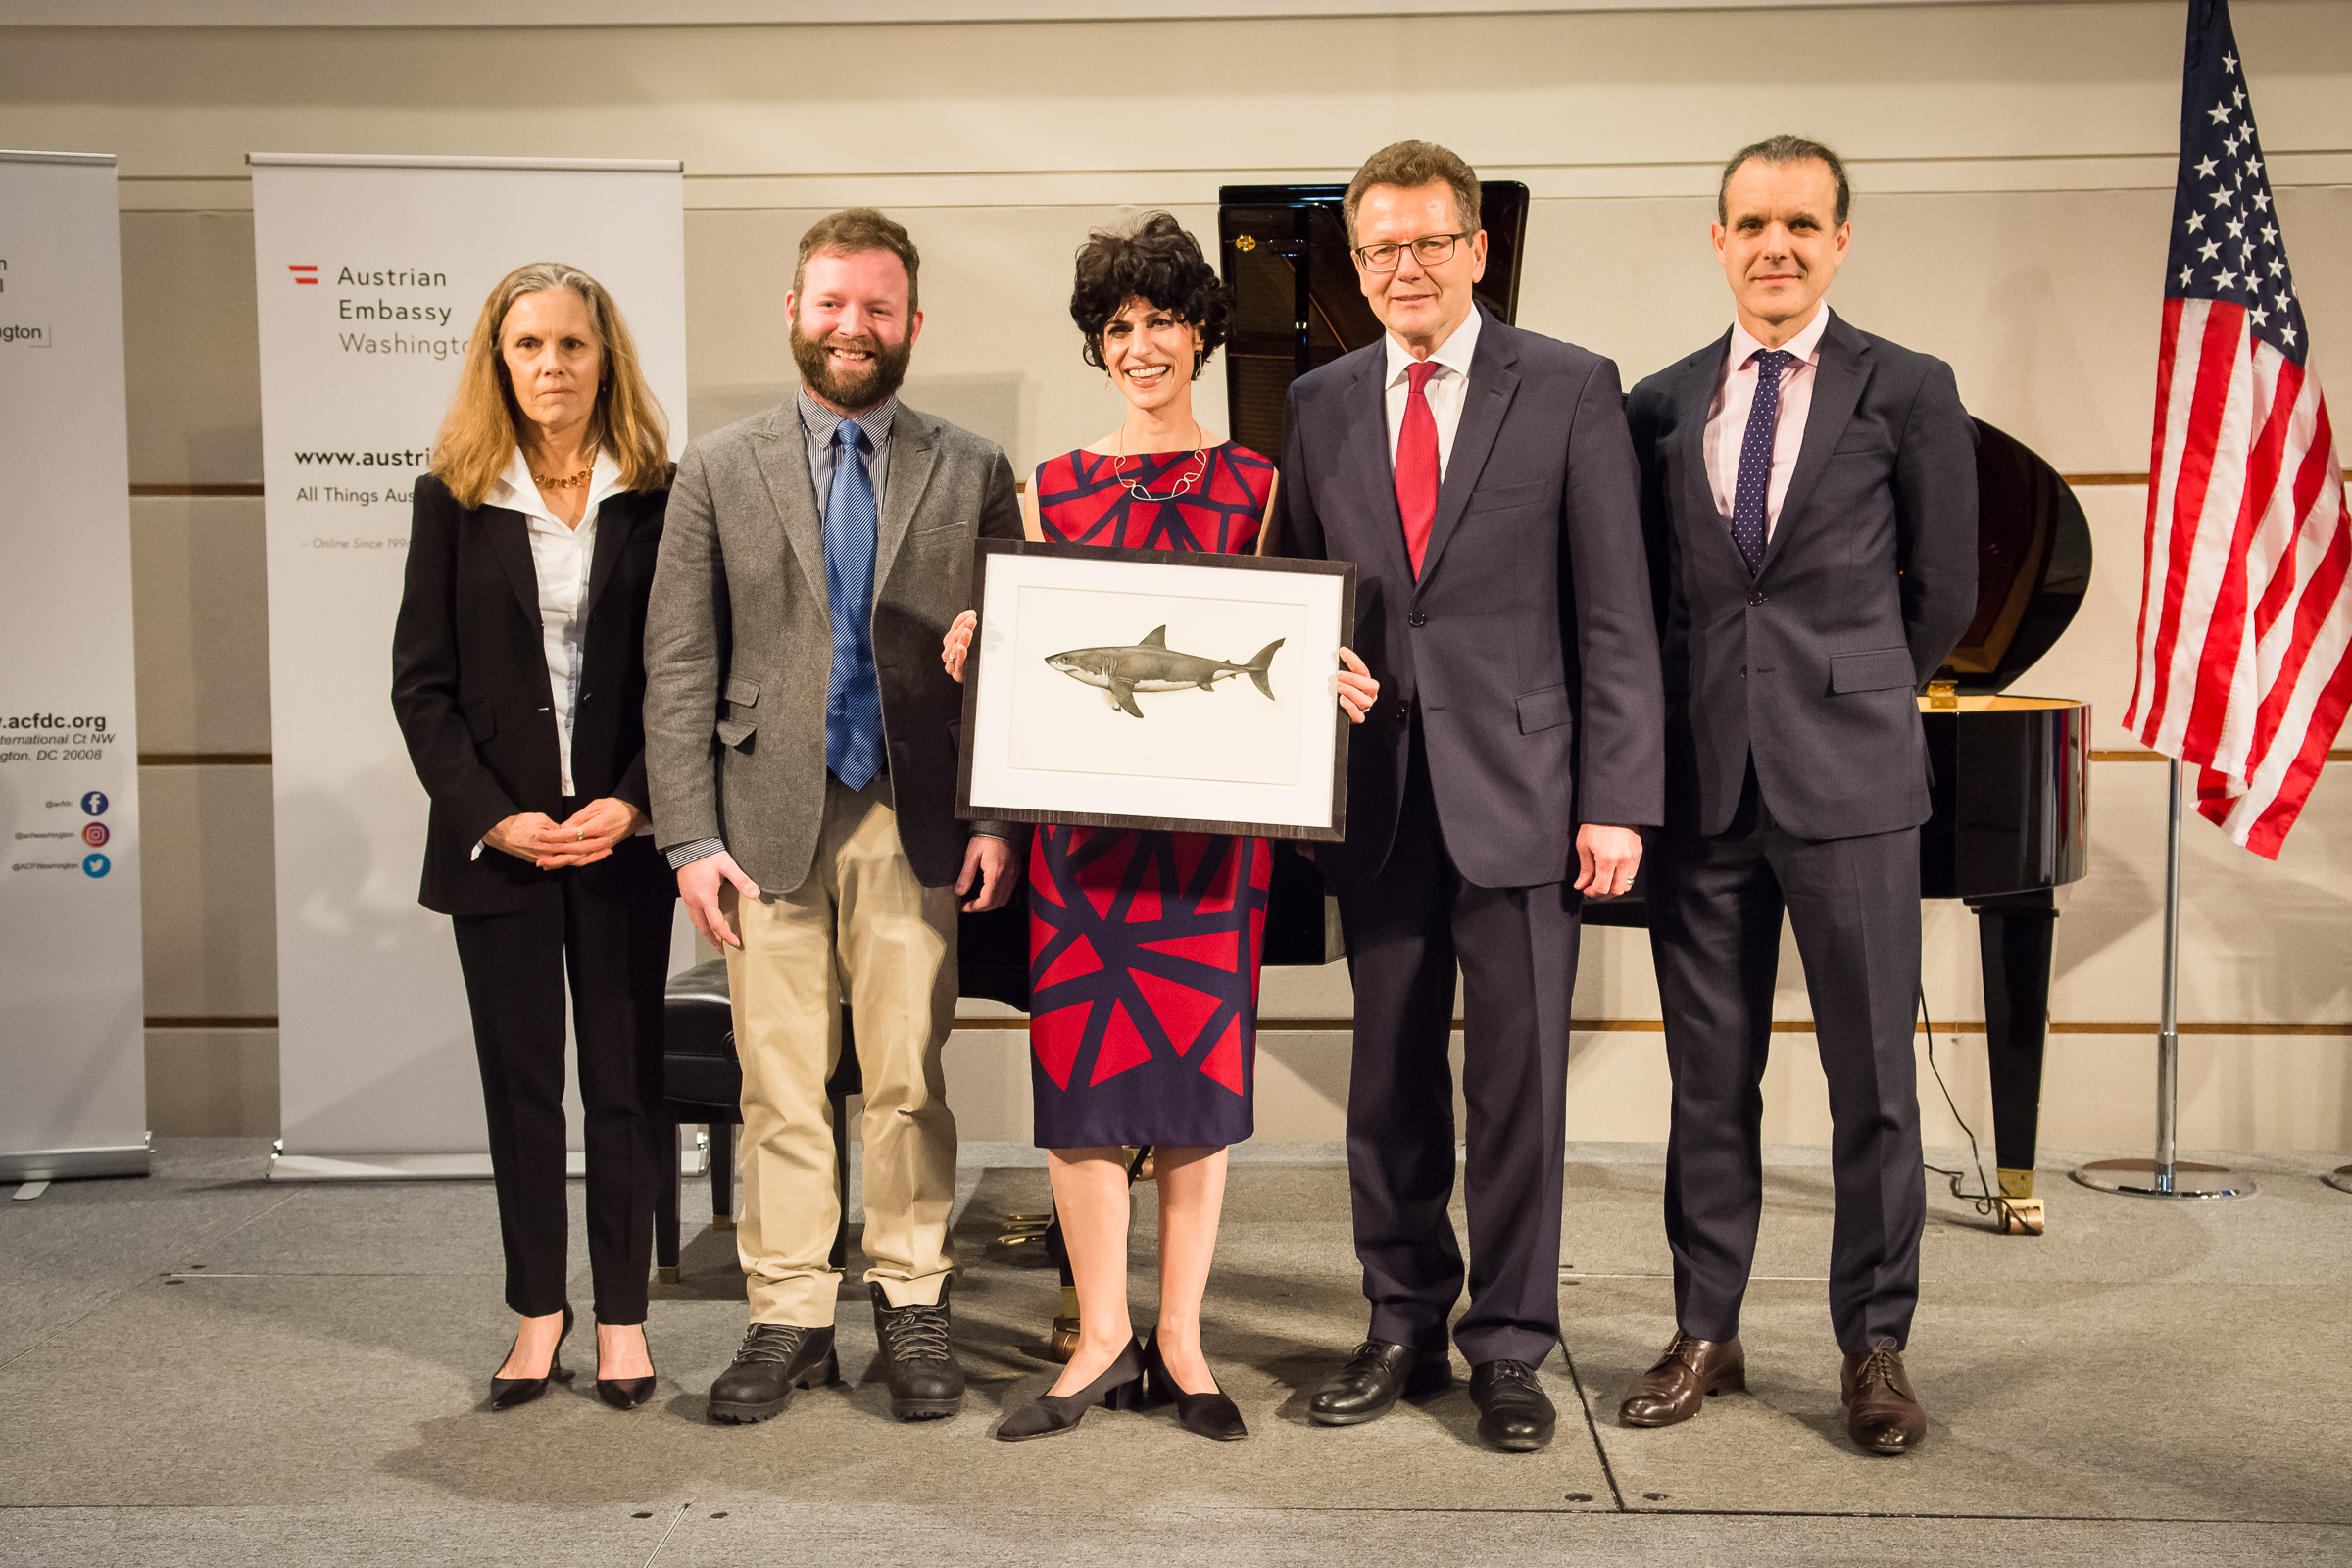 From left: Susan Vitka (DCEFF Board Chair), Chris Head (DCEFF Executive Director), Juliet Eilperin (Washington Post), Ambassador Wolfgang Waldner and Dr. Enric Sala (National Geographic)